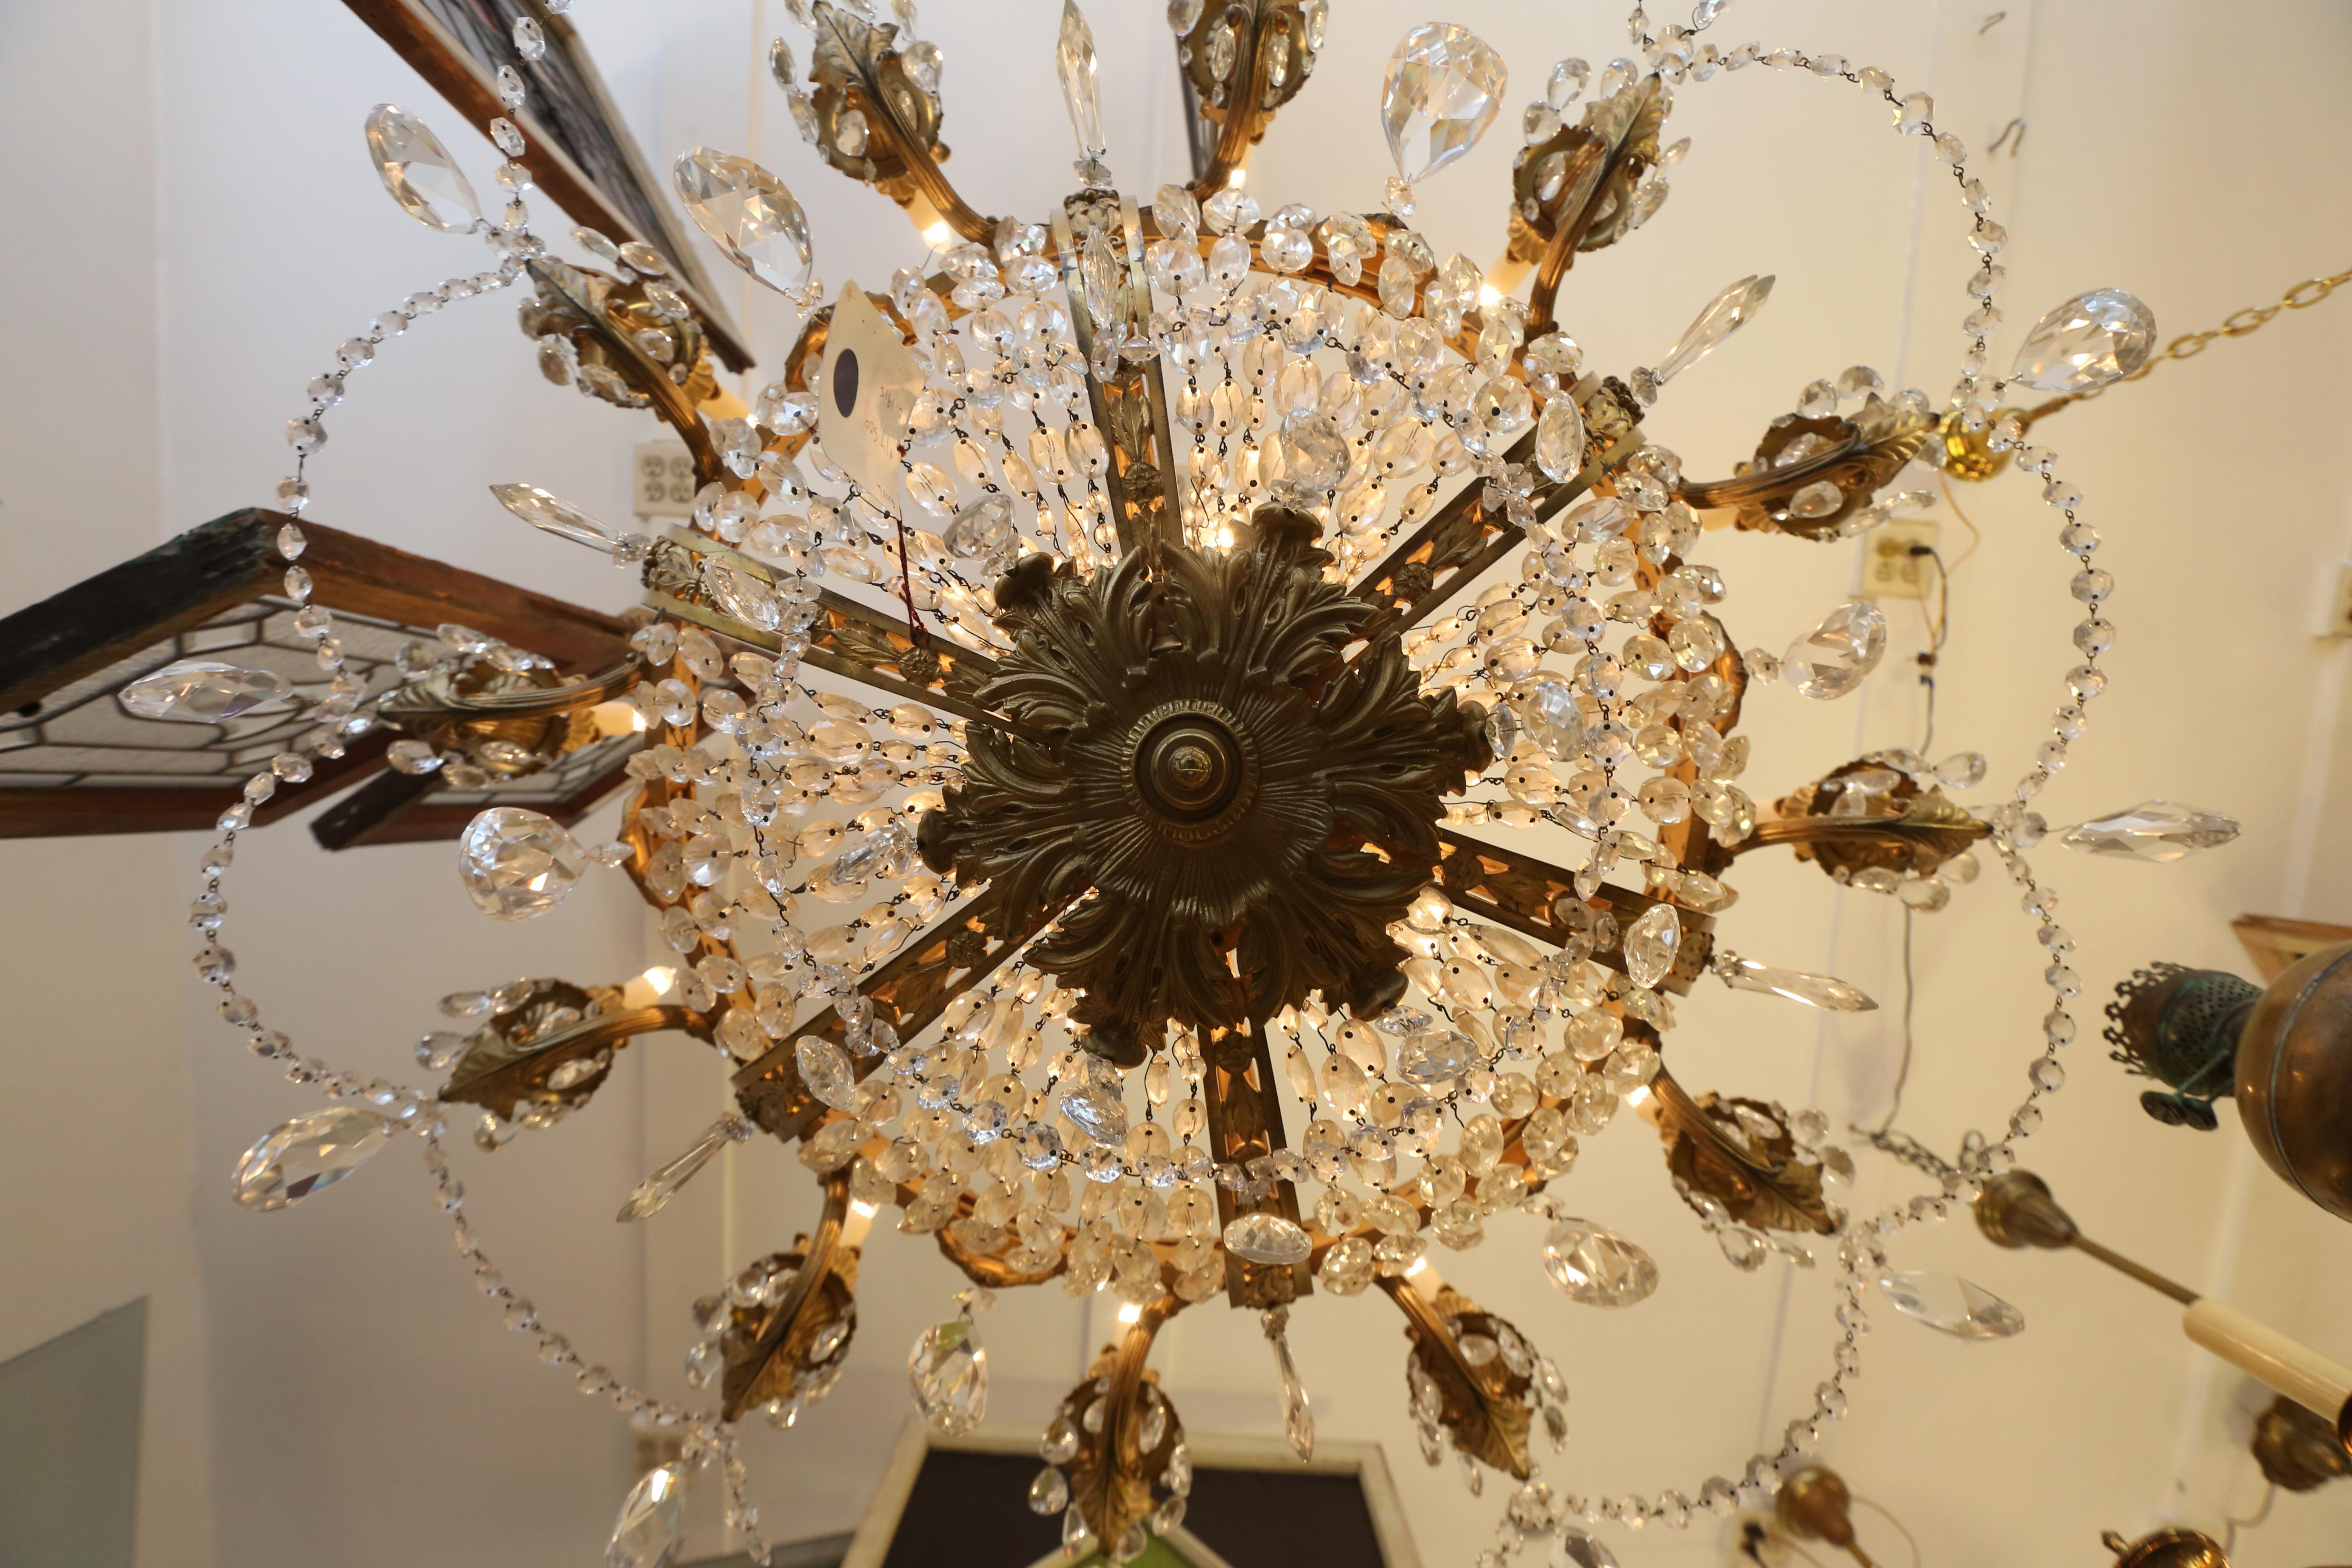 1915 chandelier - $17,500, available at The Brass Knob. (Amanda Andrade-Rhoades/DC Refined)